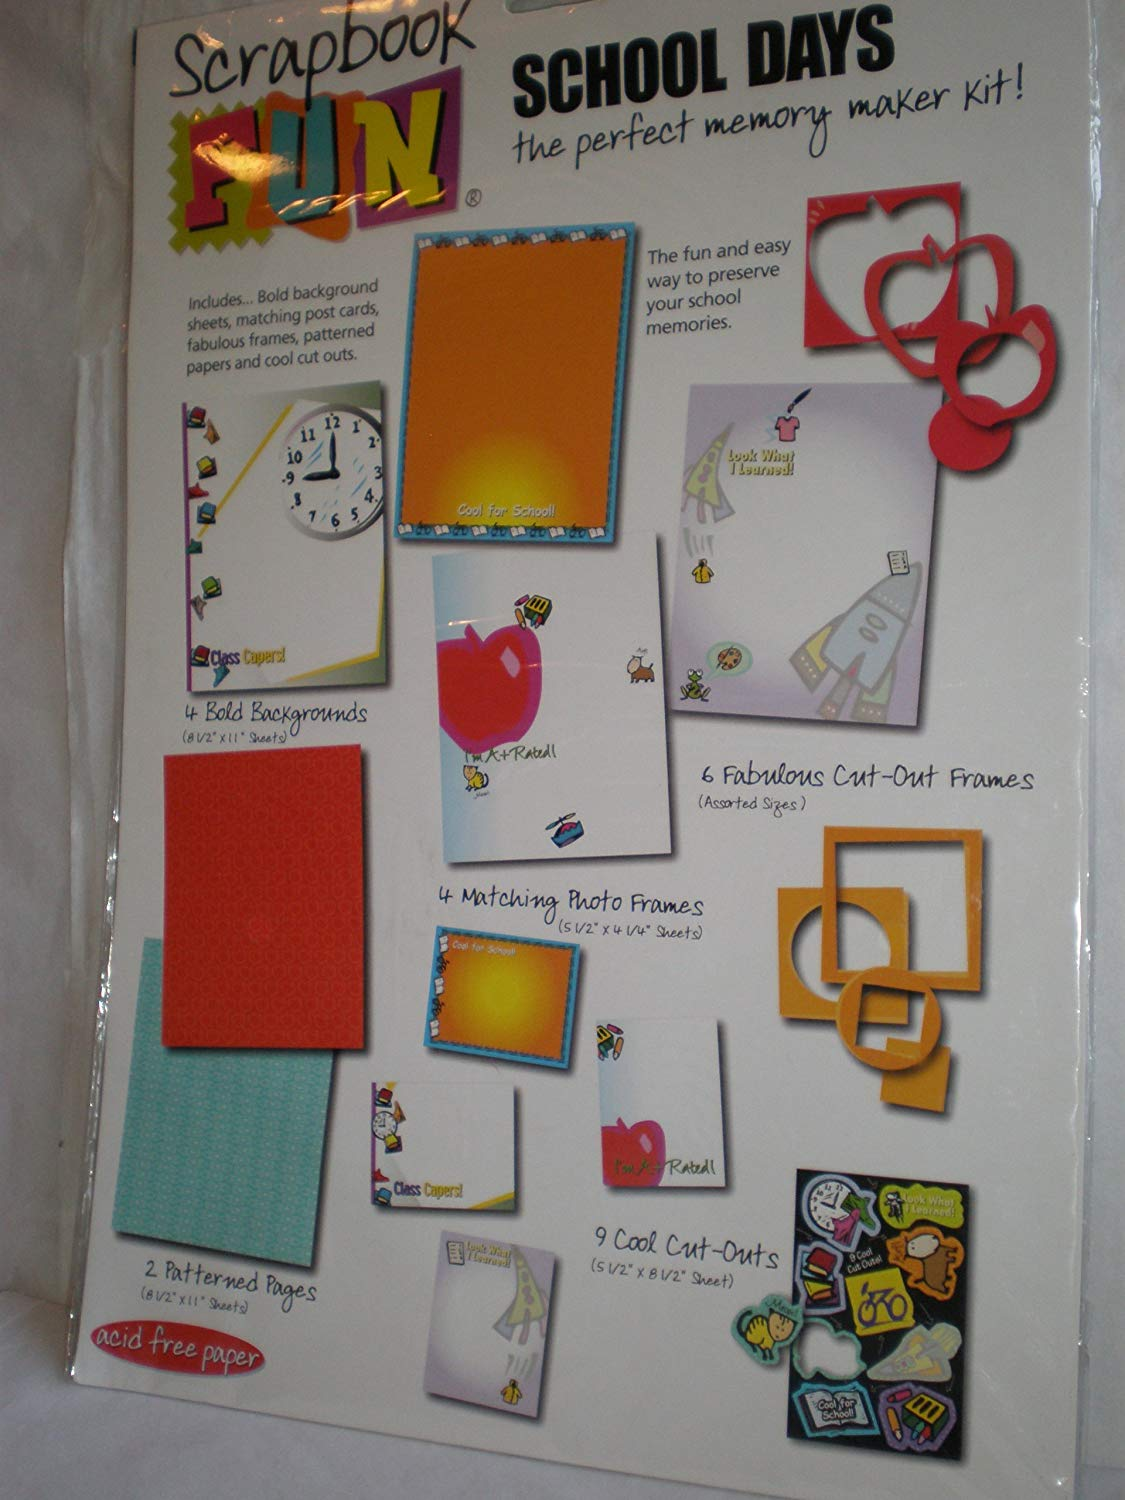 MCS Elementary School Themed Expandable Scrapbook Includes 10 Acid Free 12x12 Inch Pages